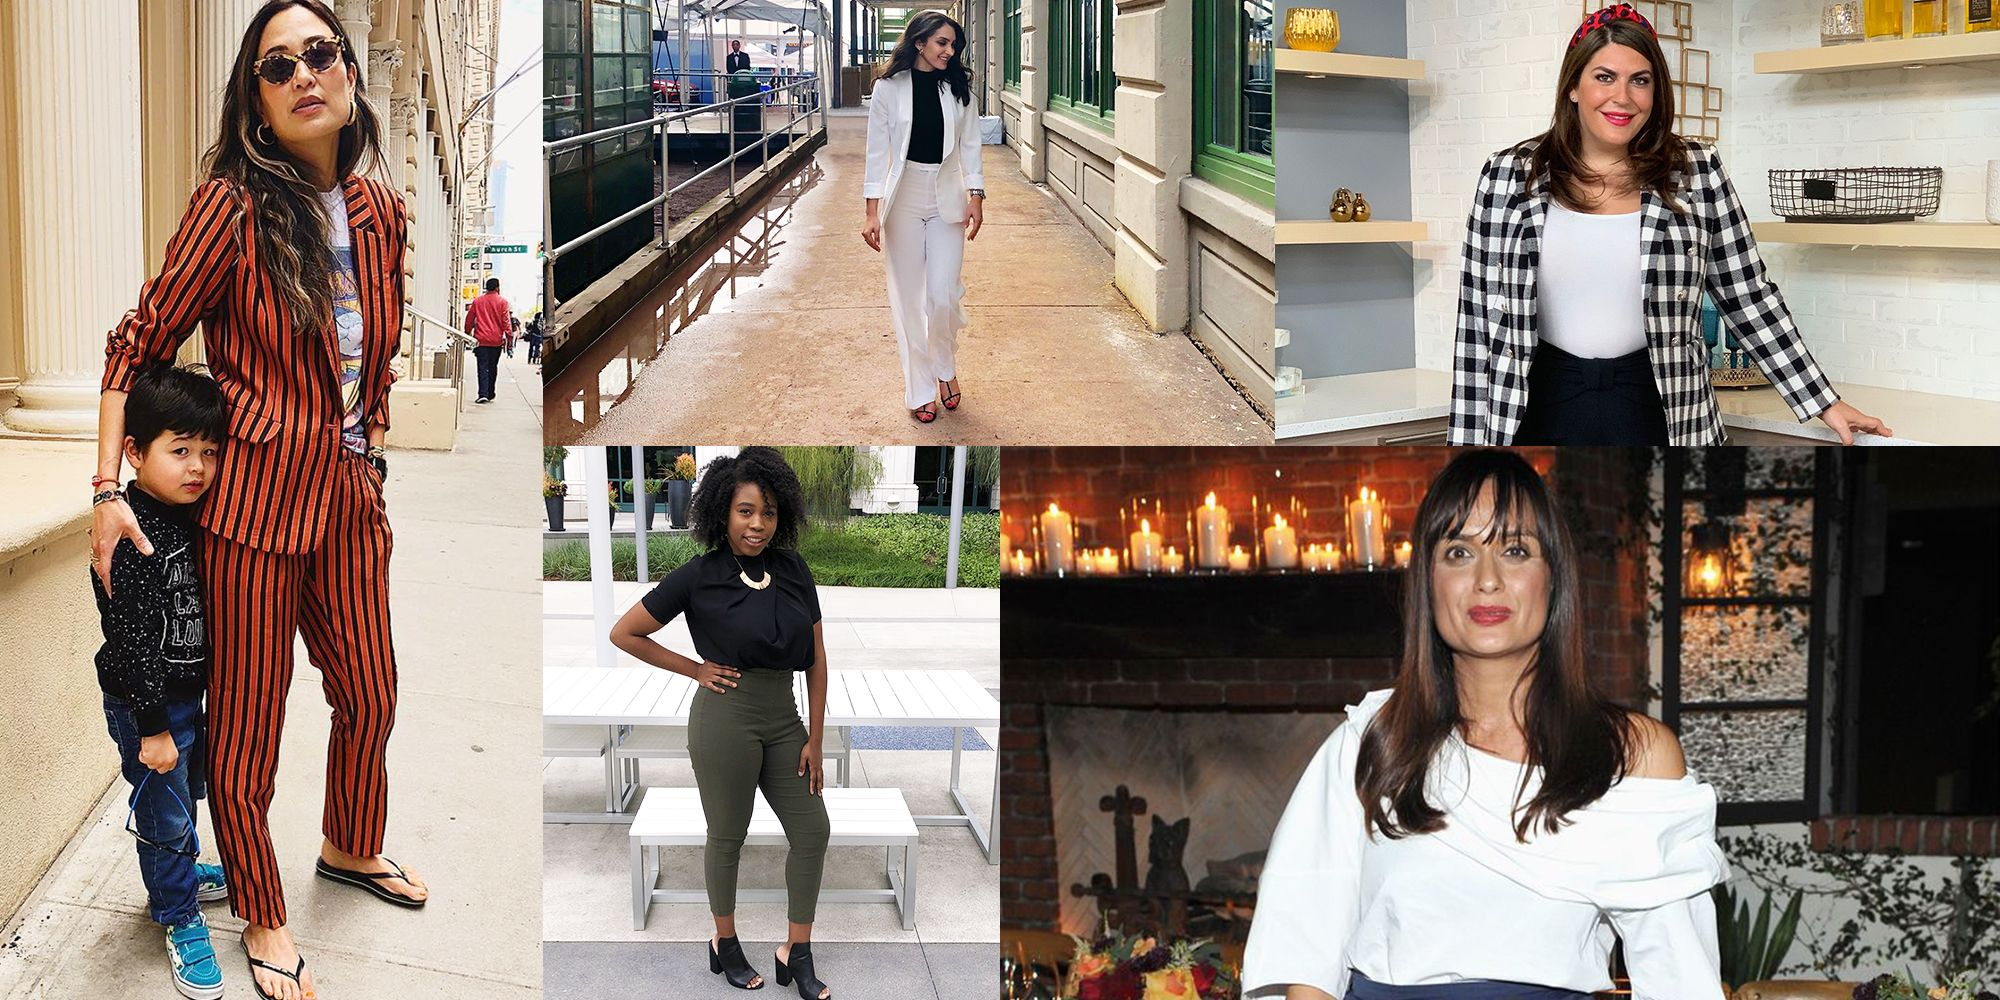 Start-up moguls, fashion execs, and tech entrepreneurs weigh in.